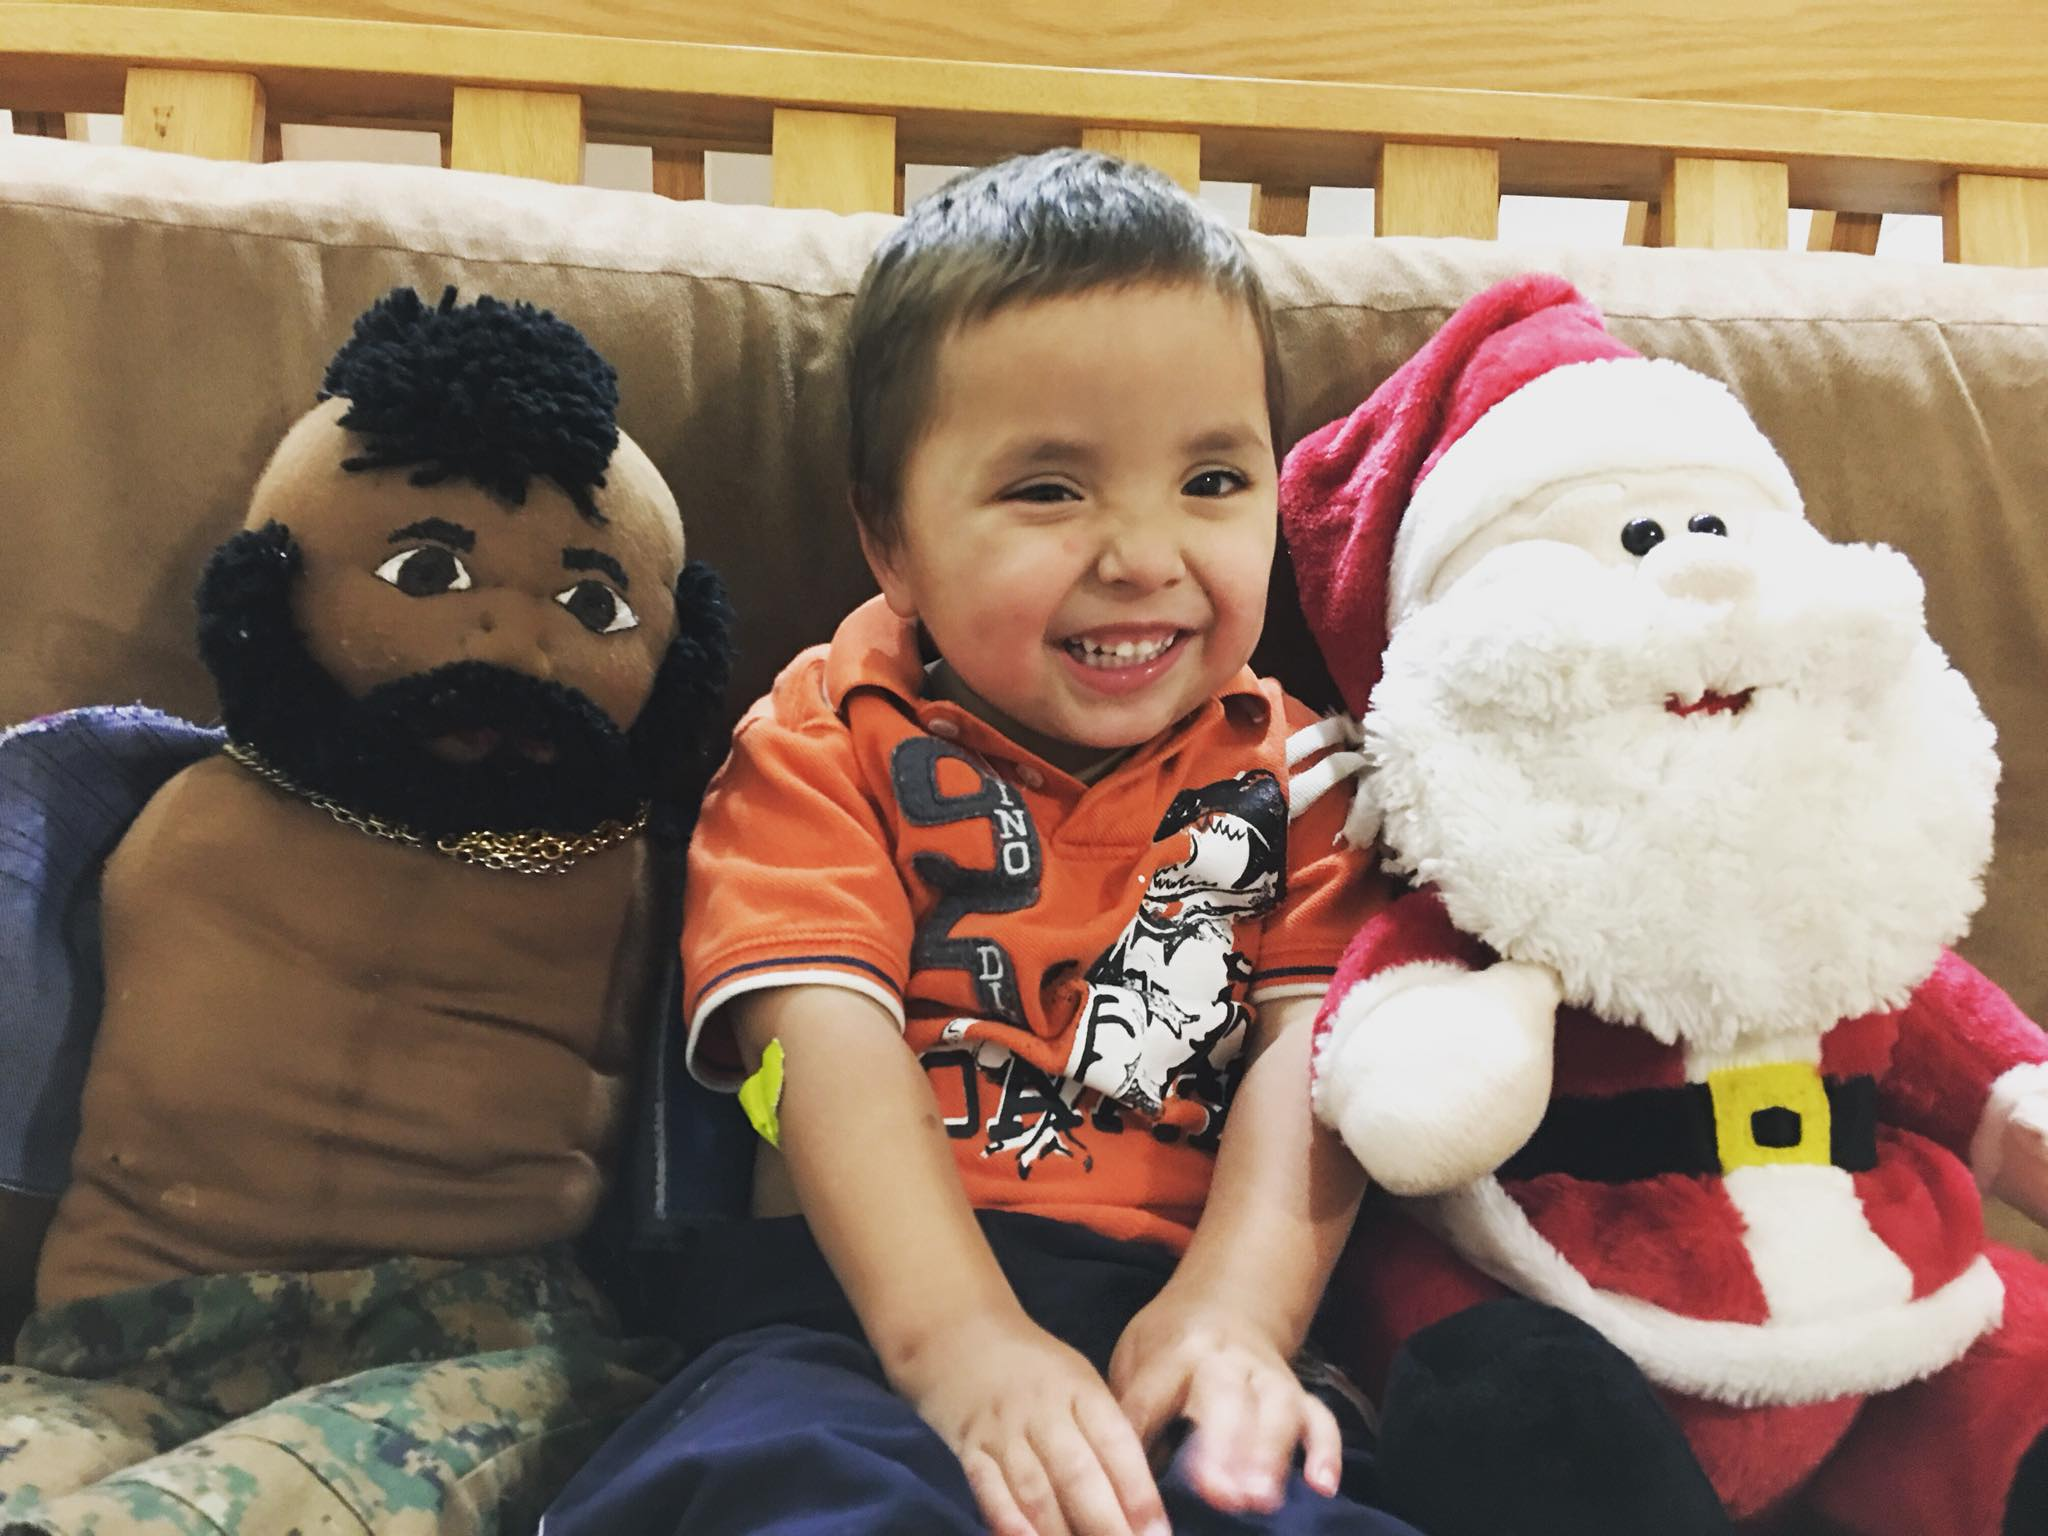 Almost three year old with Mr. T and Santa